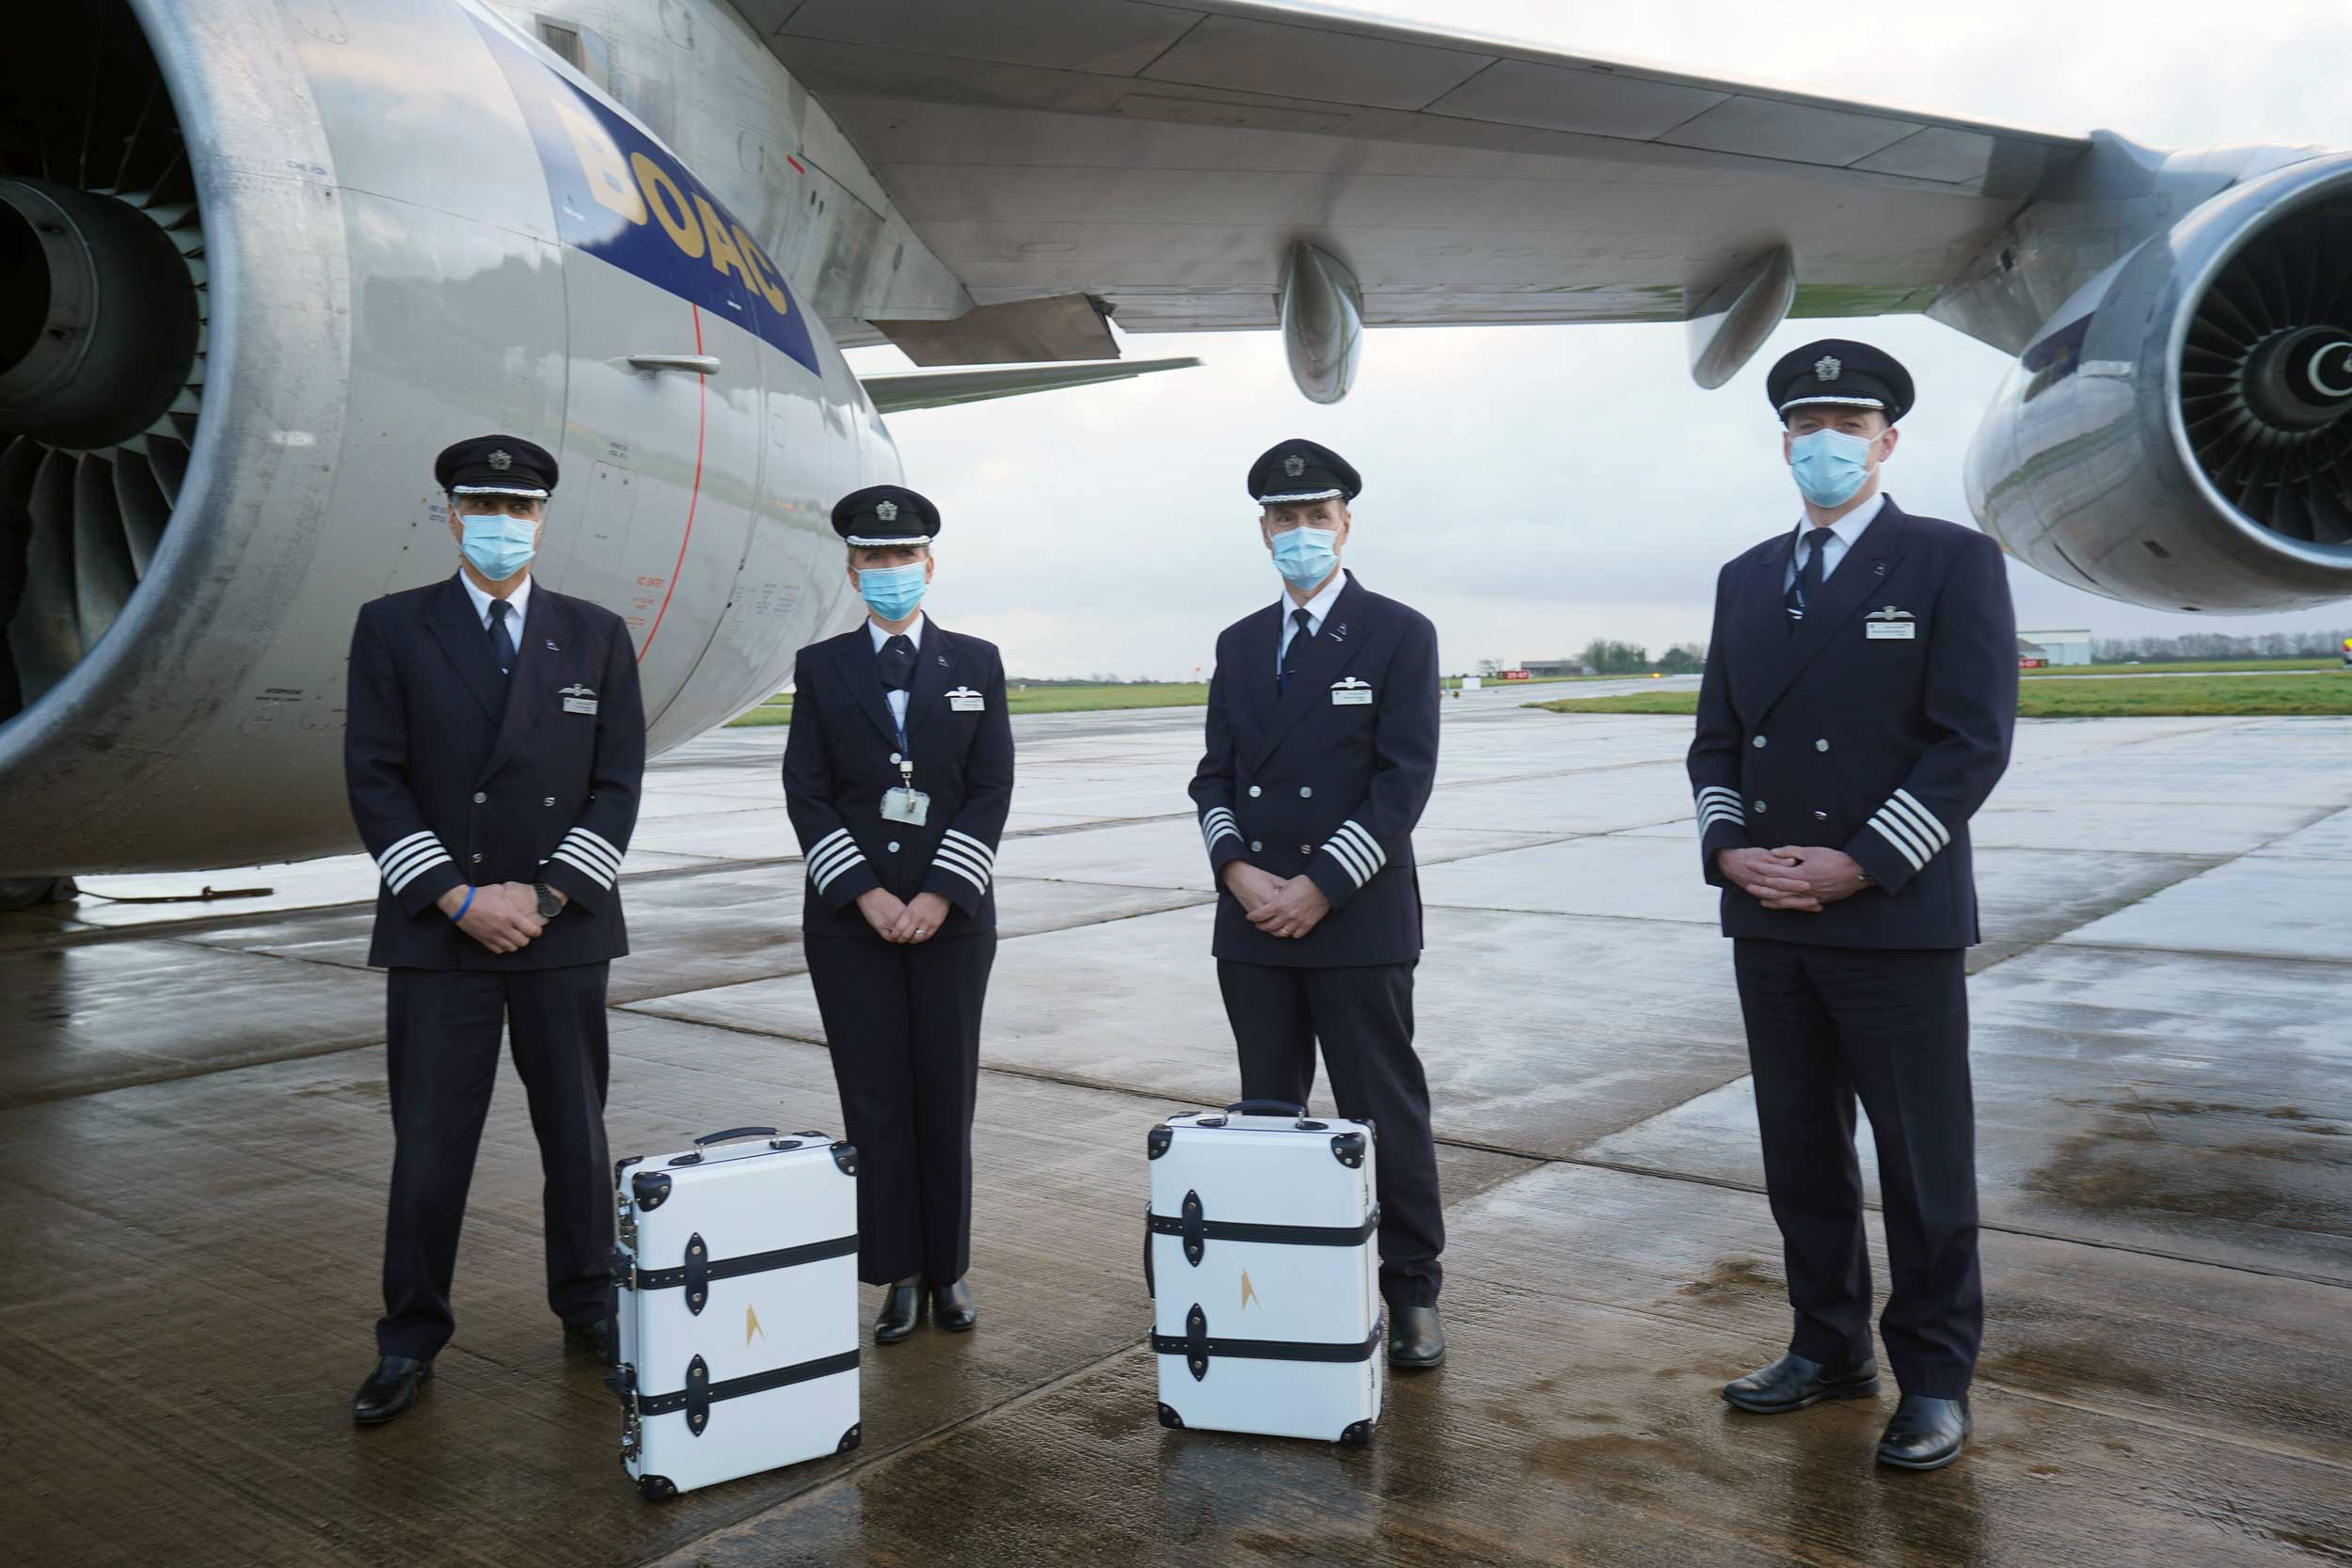 BOAC suitcases